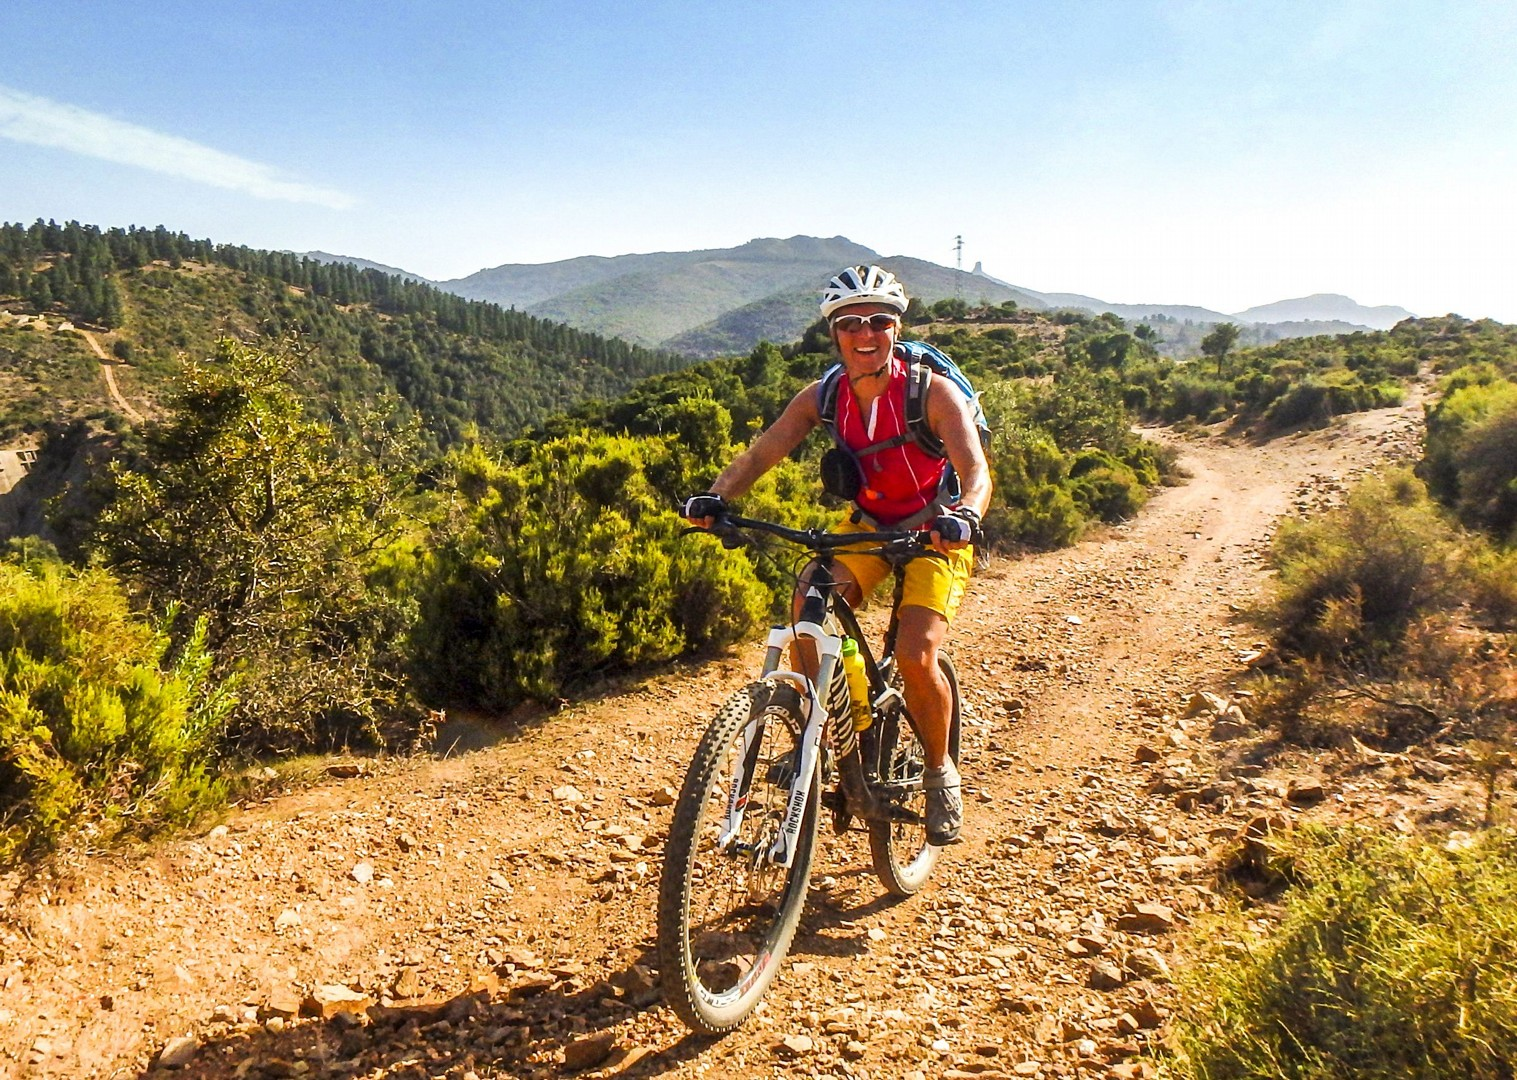 woman-mountain-biking-saddle-skedaddle-sardinia-italy-guided.jpg - Sardinia - Coast to Coast - Mountain Biking